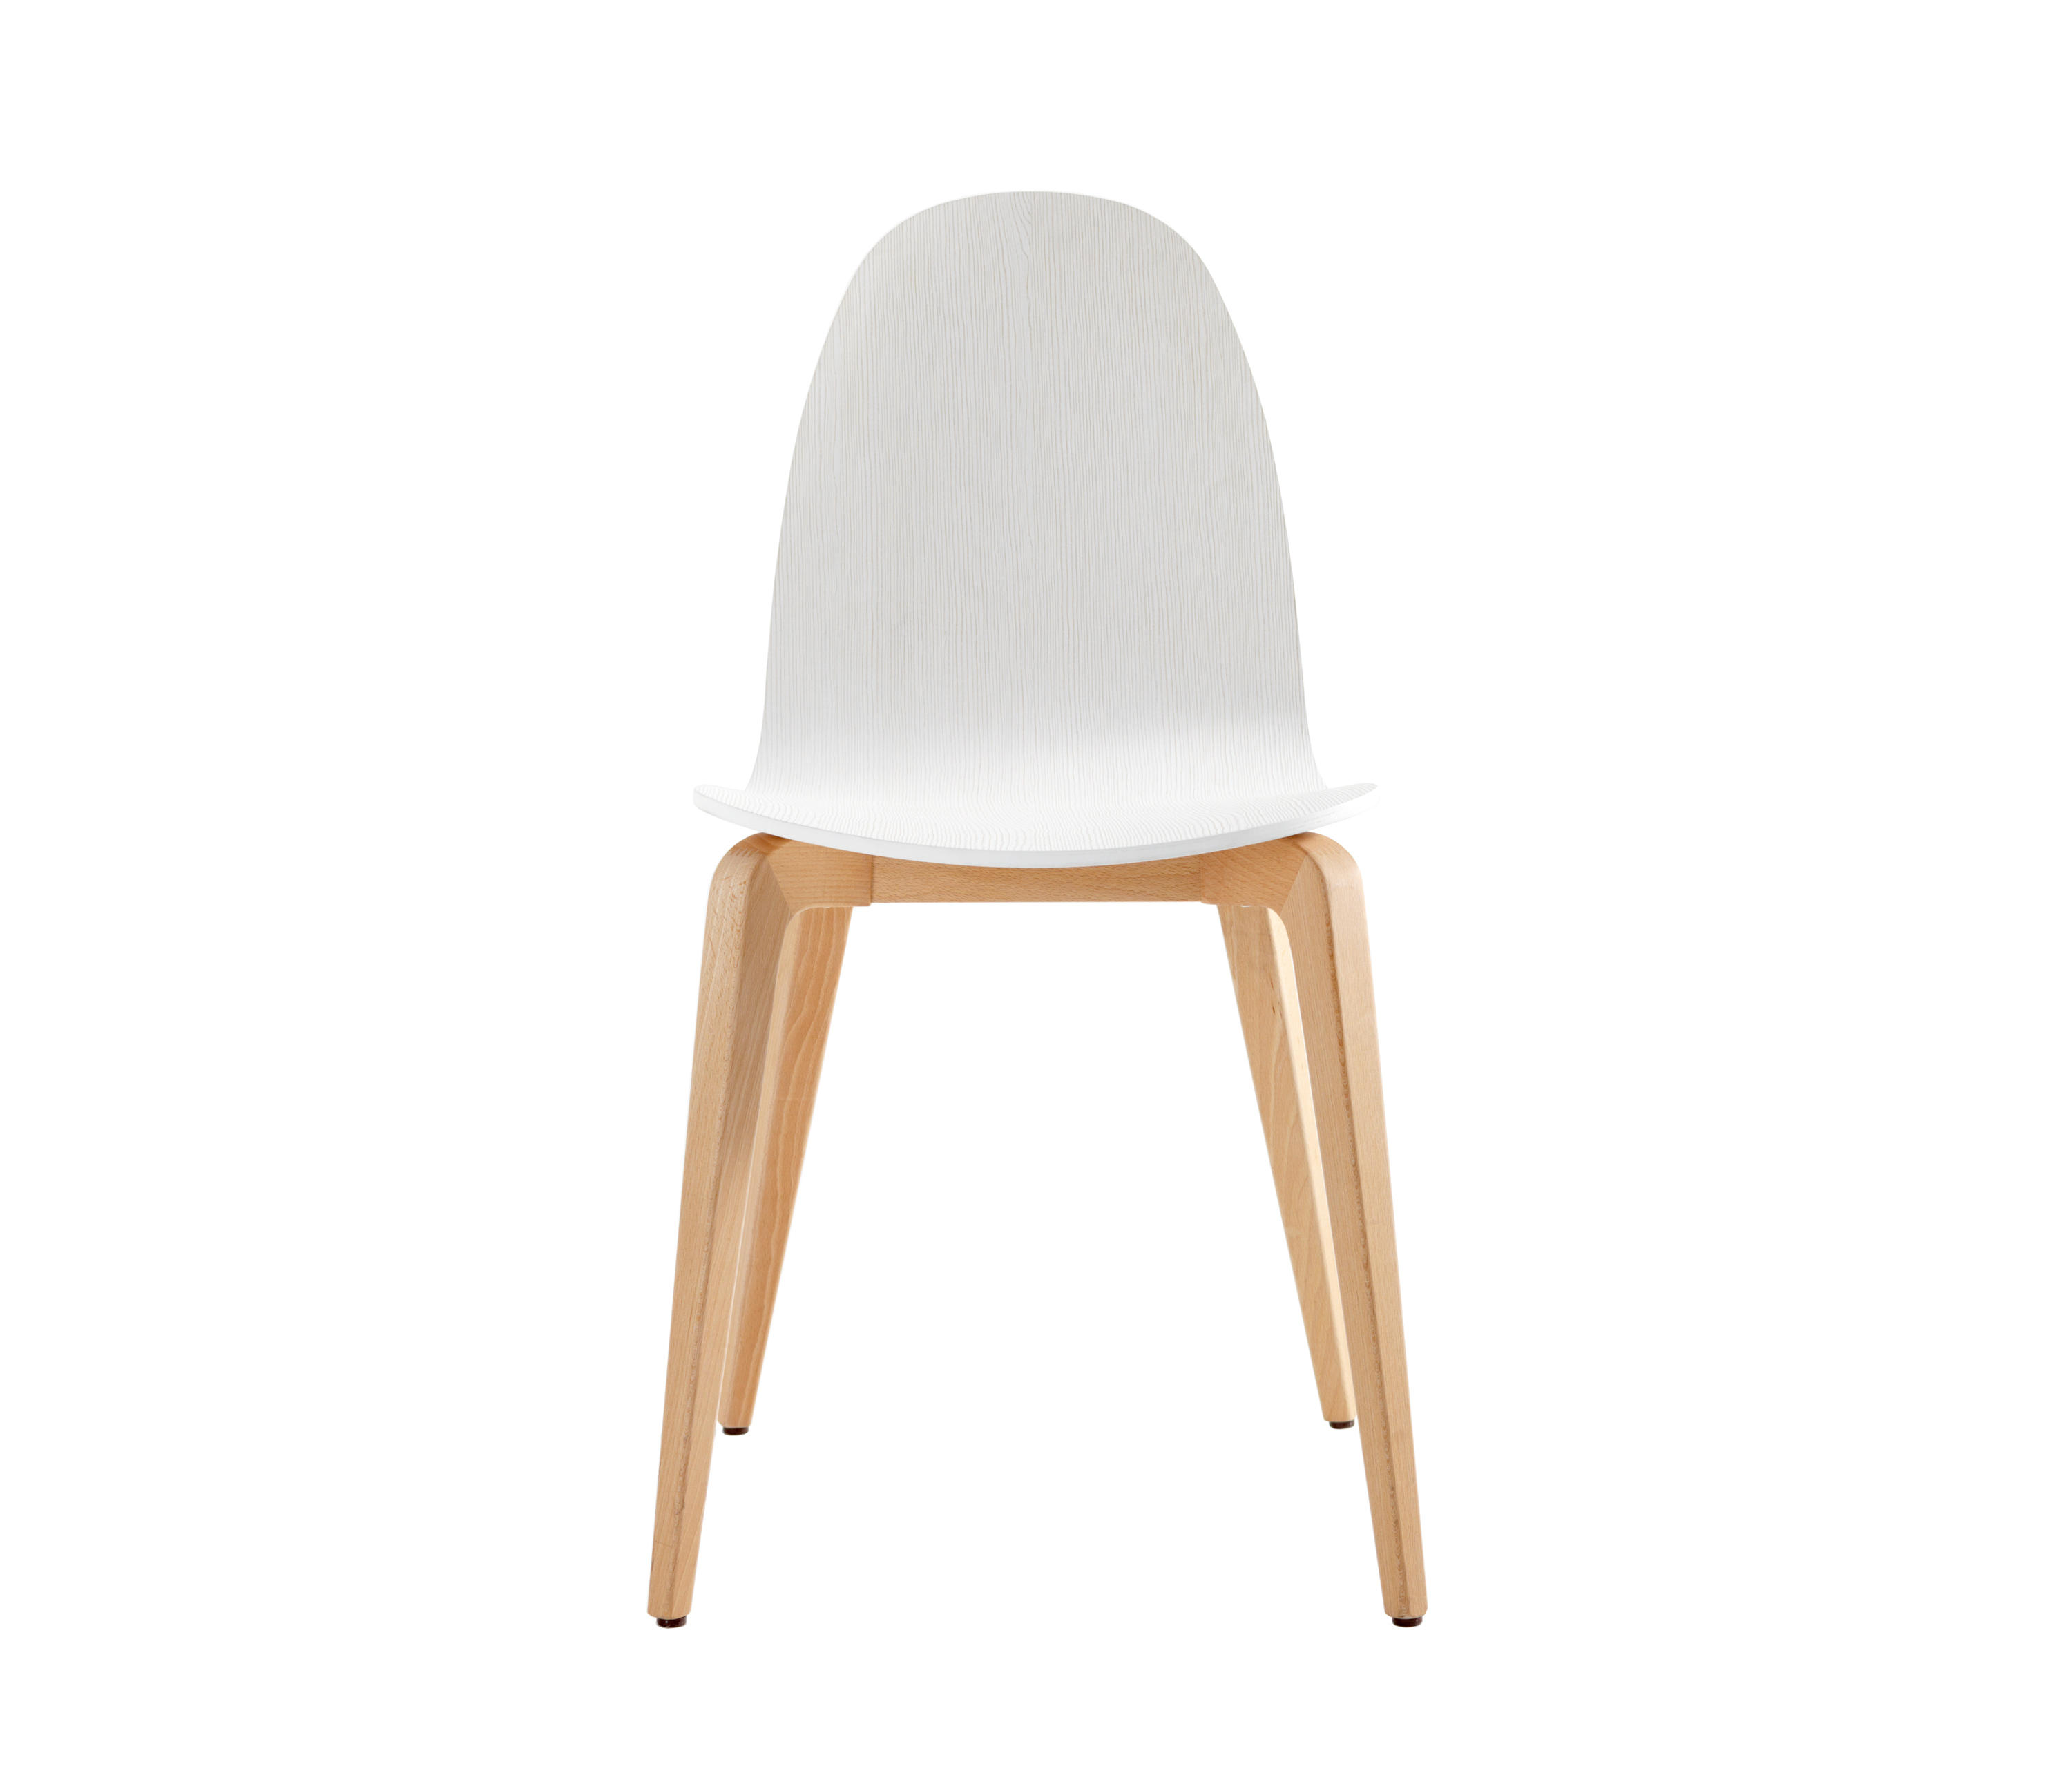 en by b restaurant from bob chairs architonic product chair madera ondarreta wood